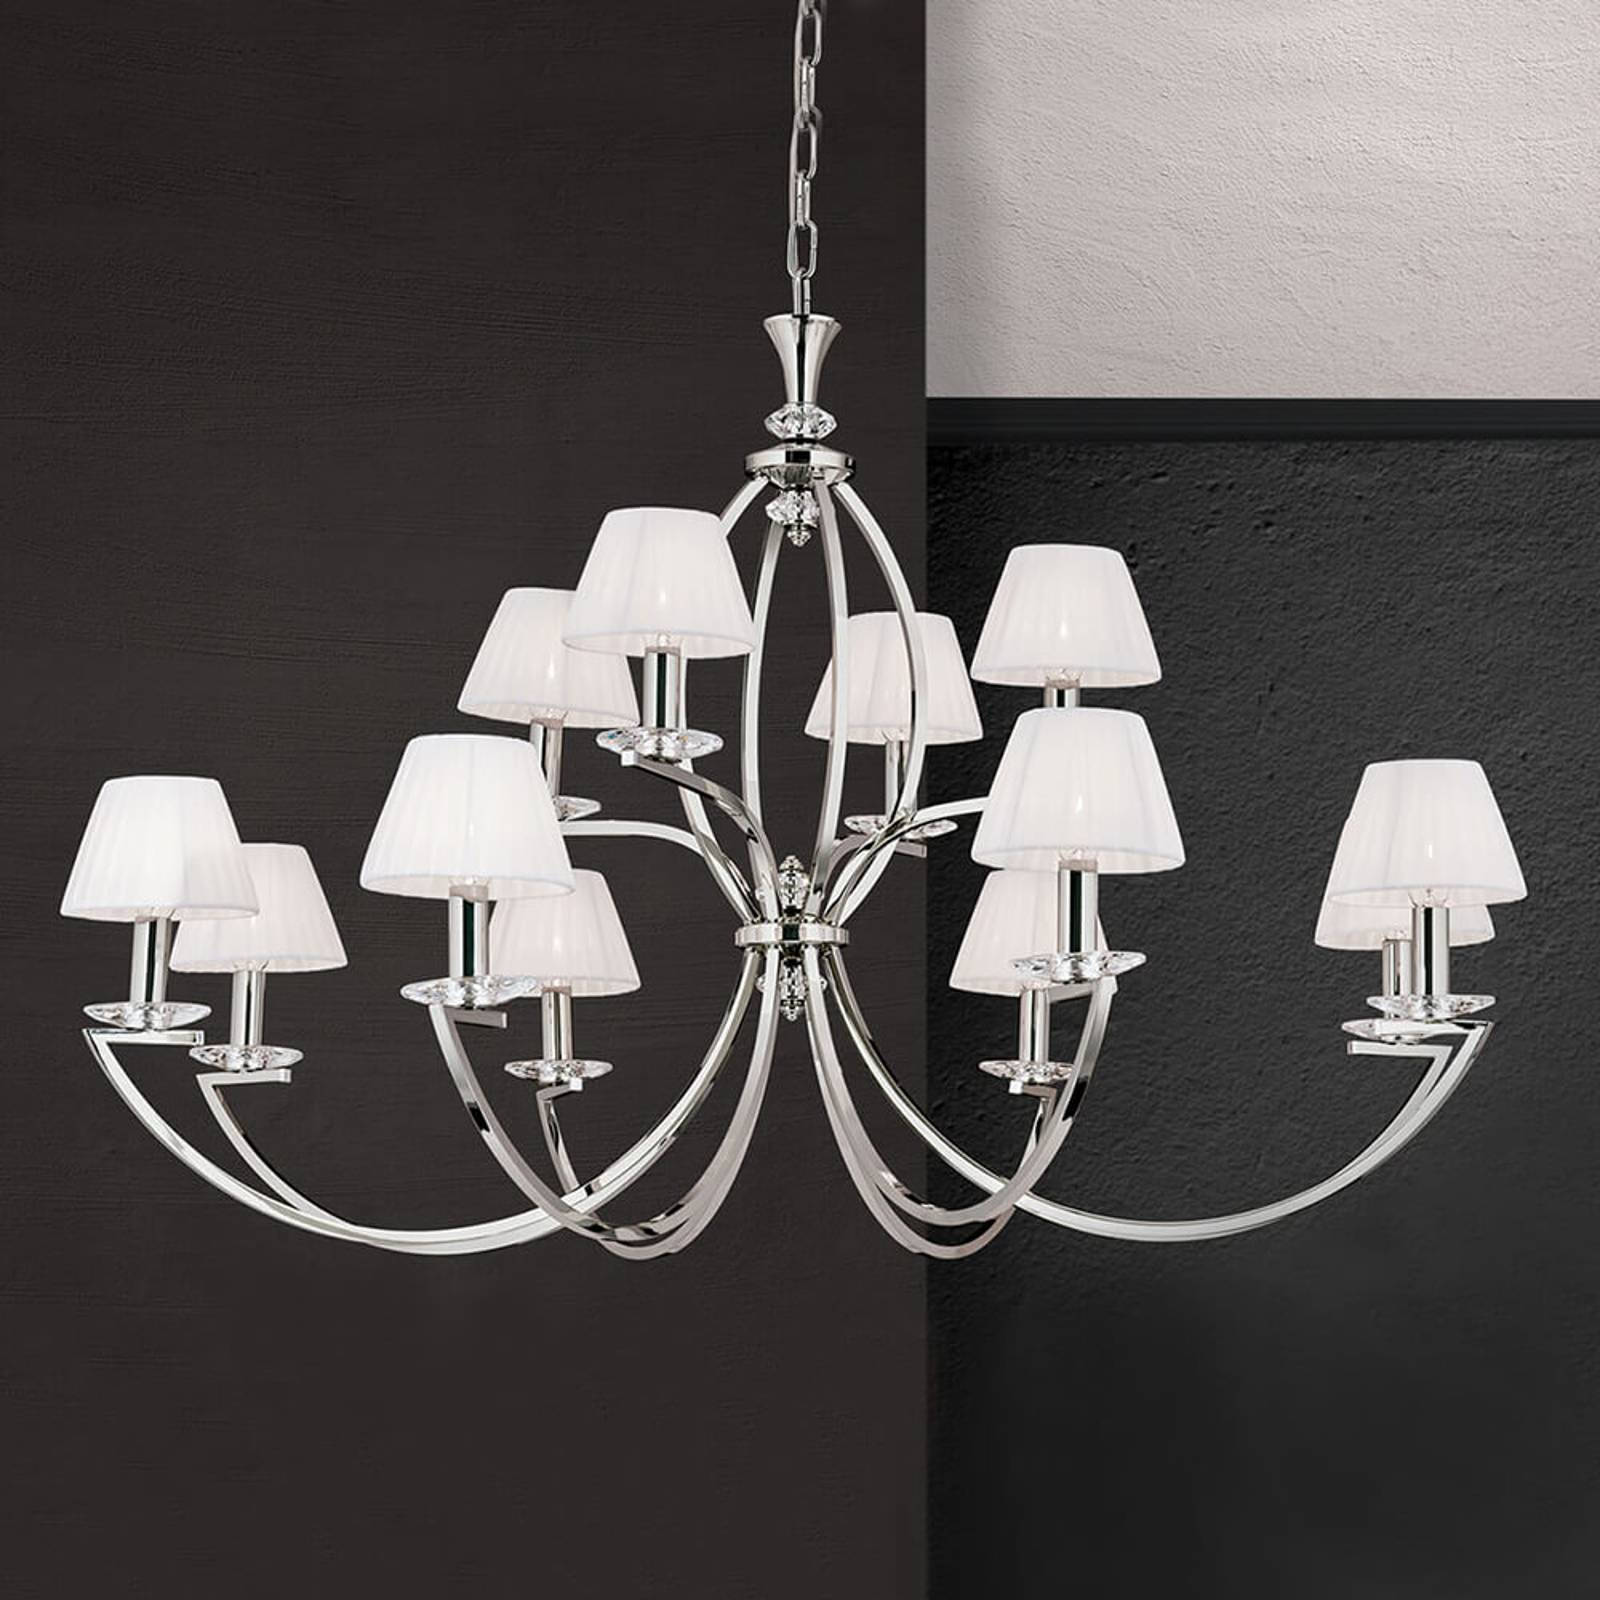 Avala - magnificent chandelier in nickel and white from Orion